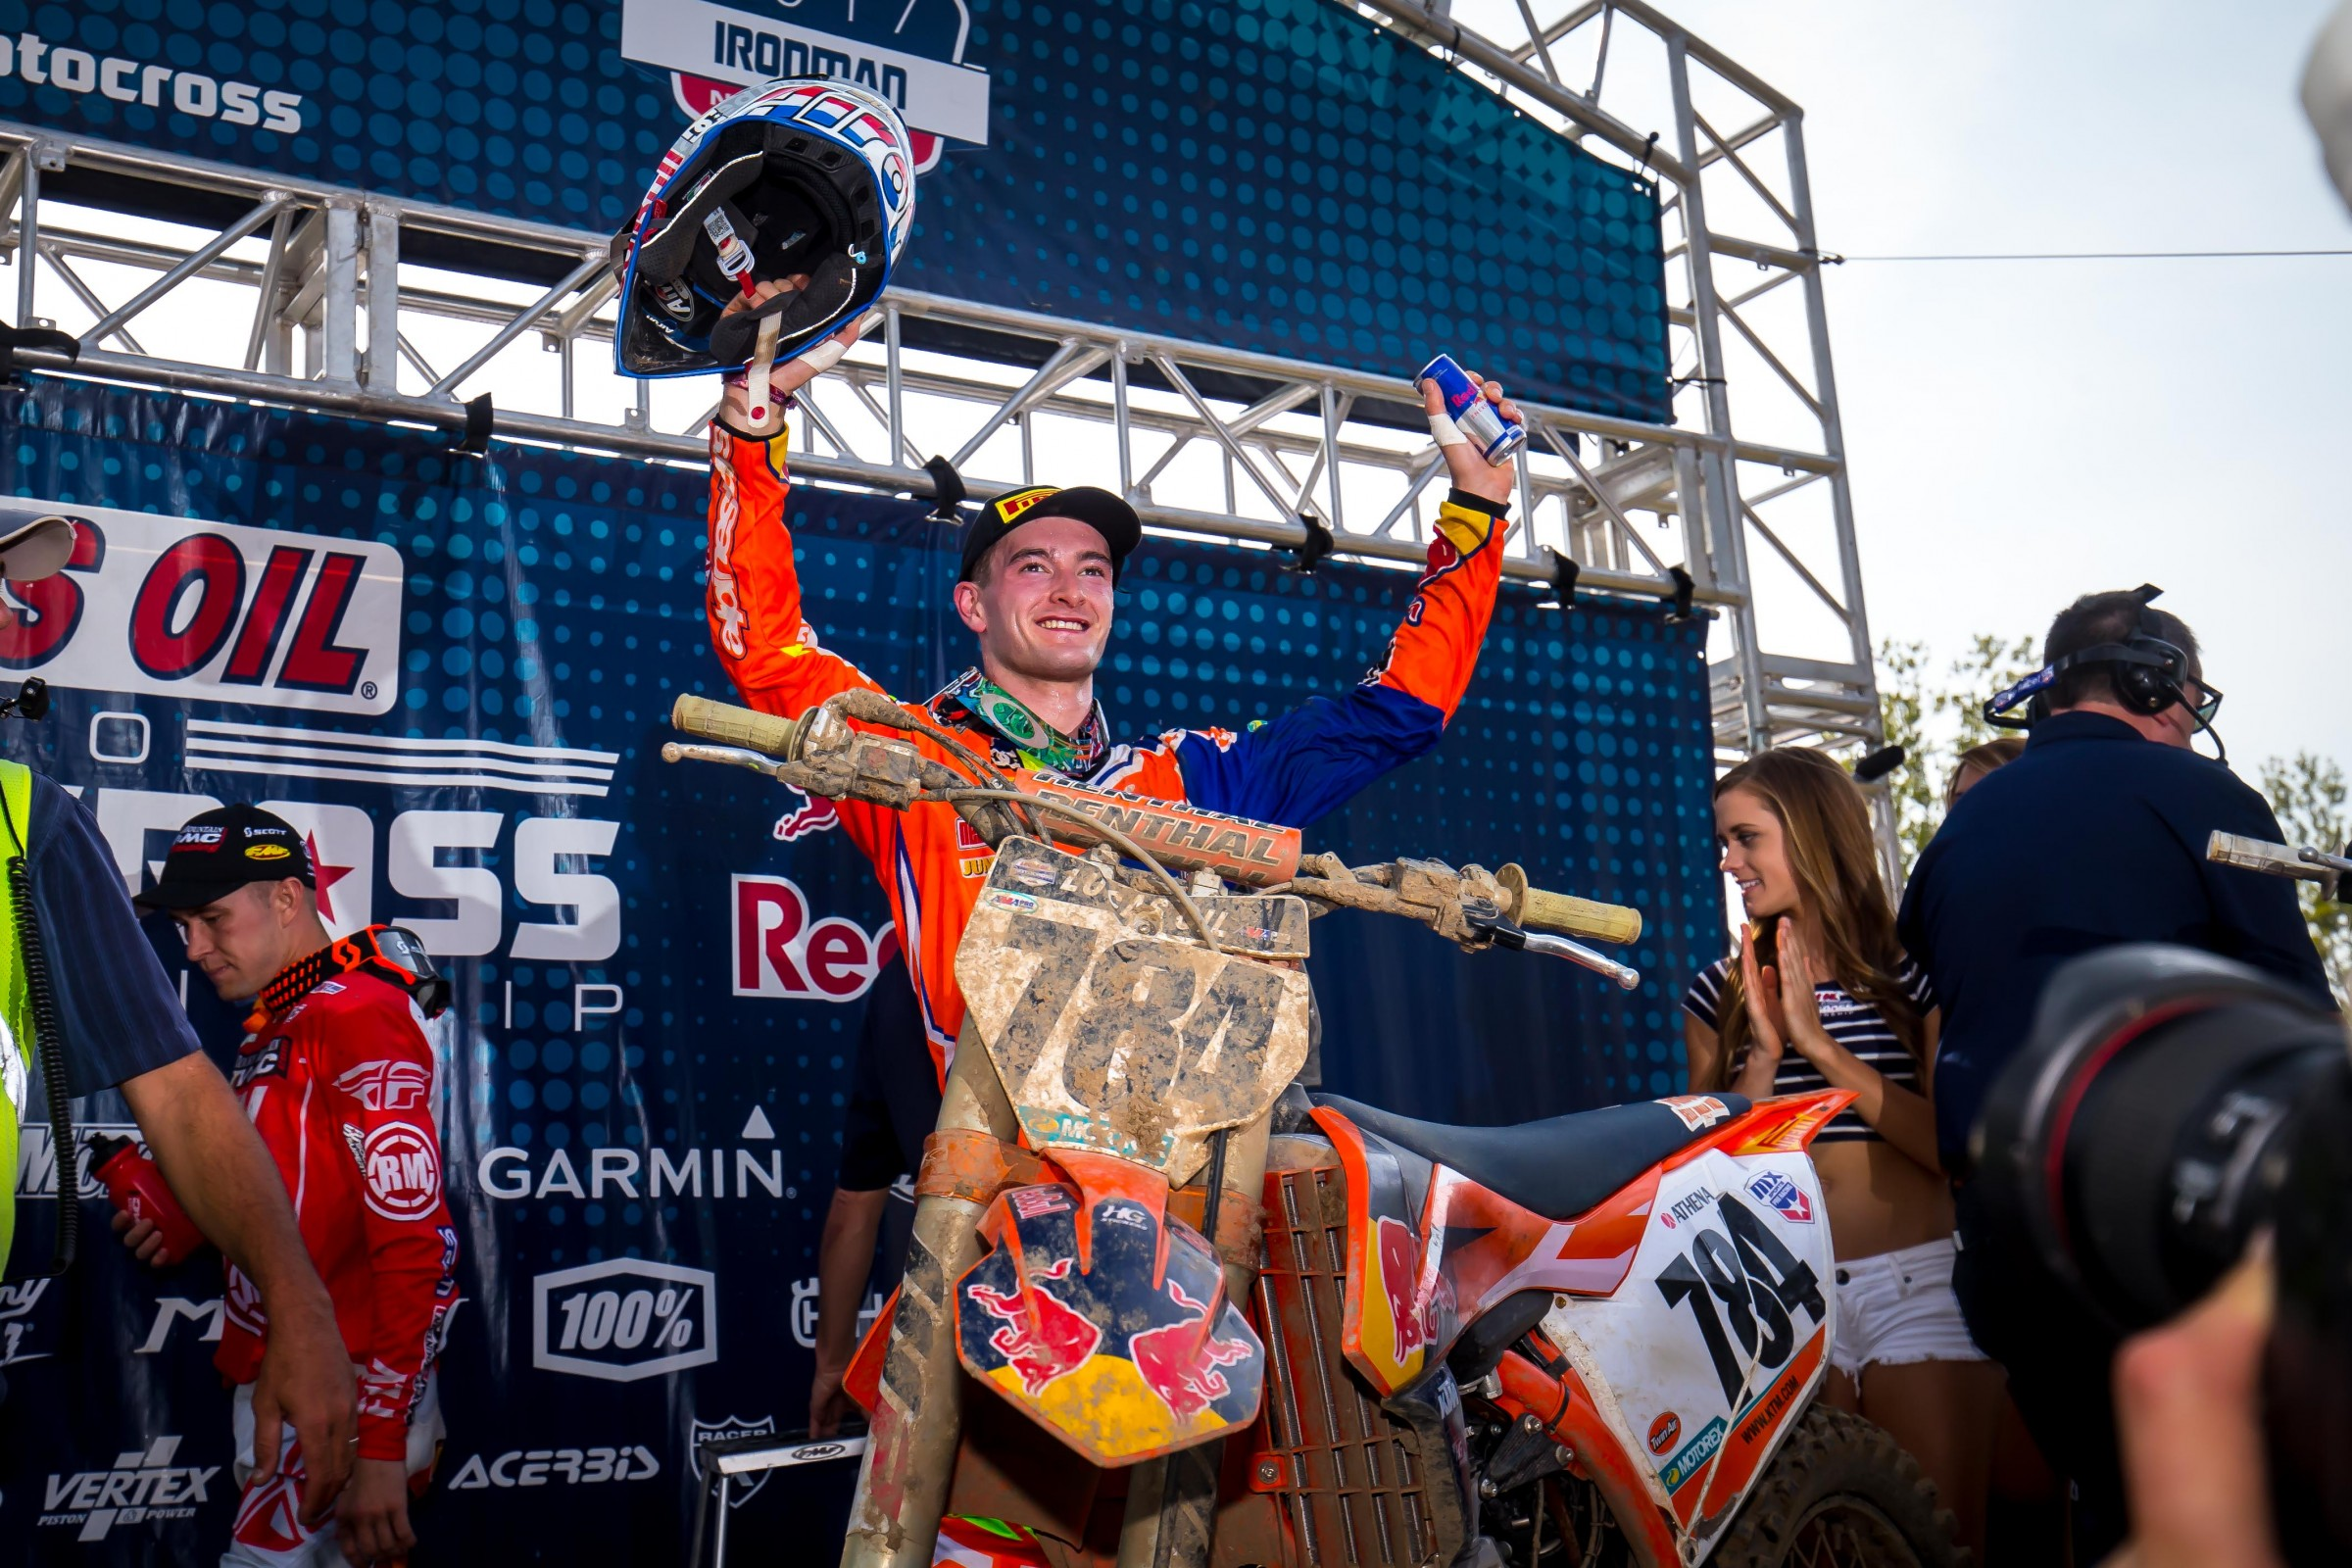 Herlings was all smiles after being the fastest rider in practice and sweeping both motos.